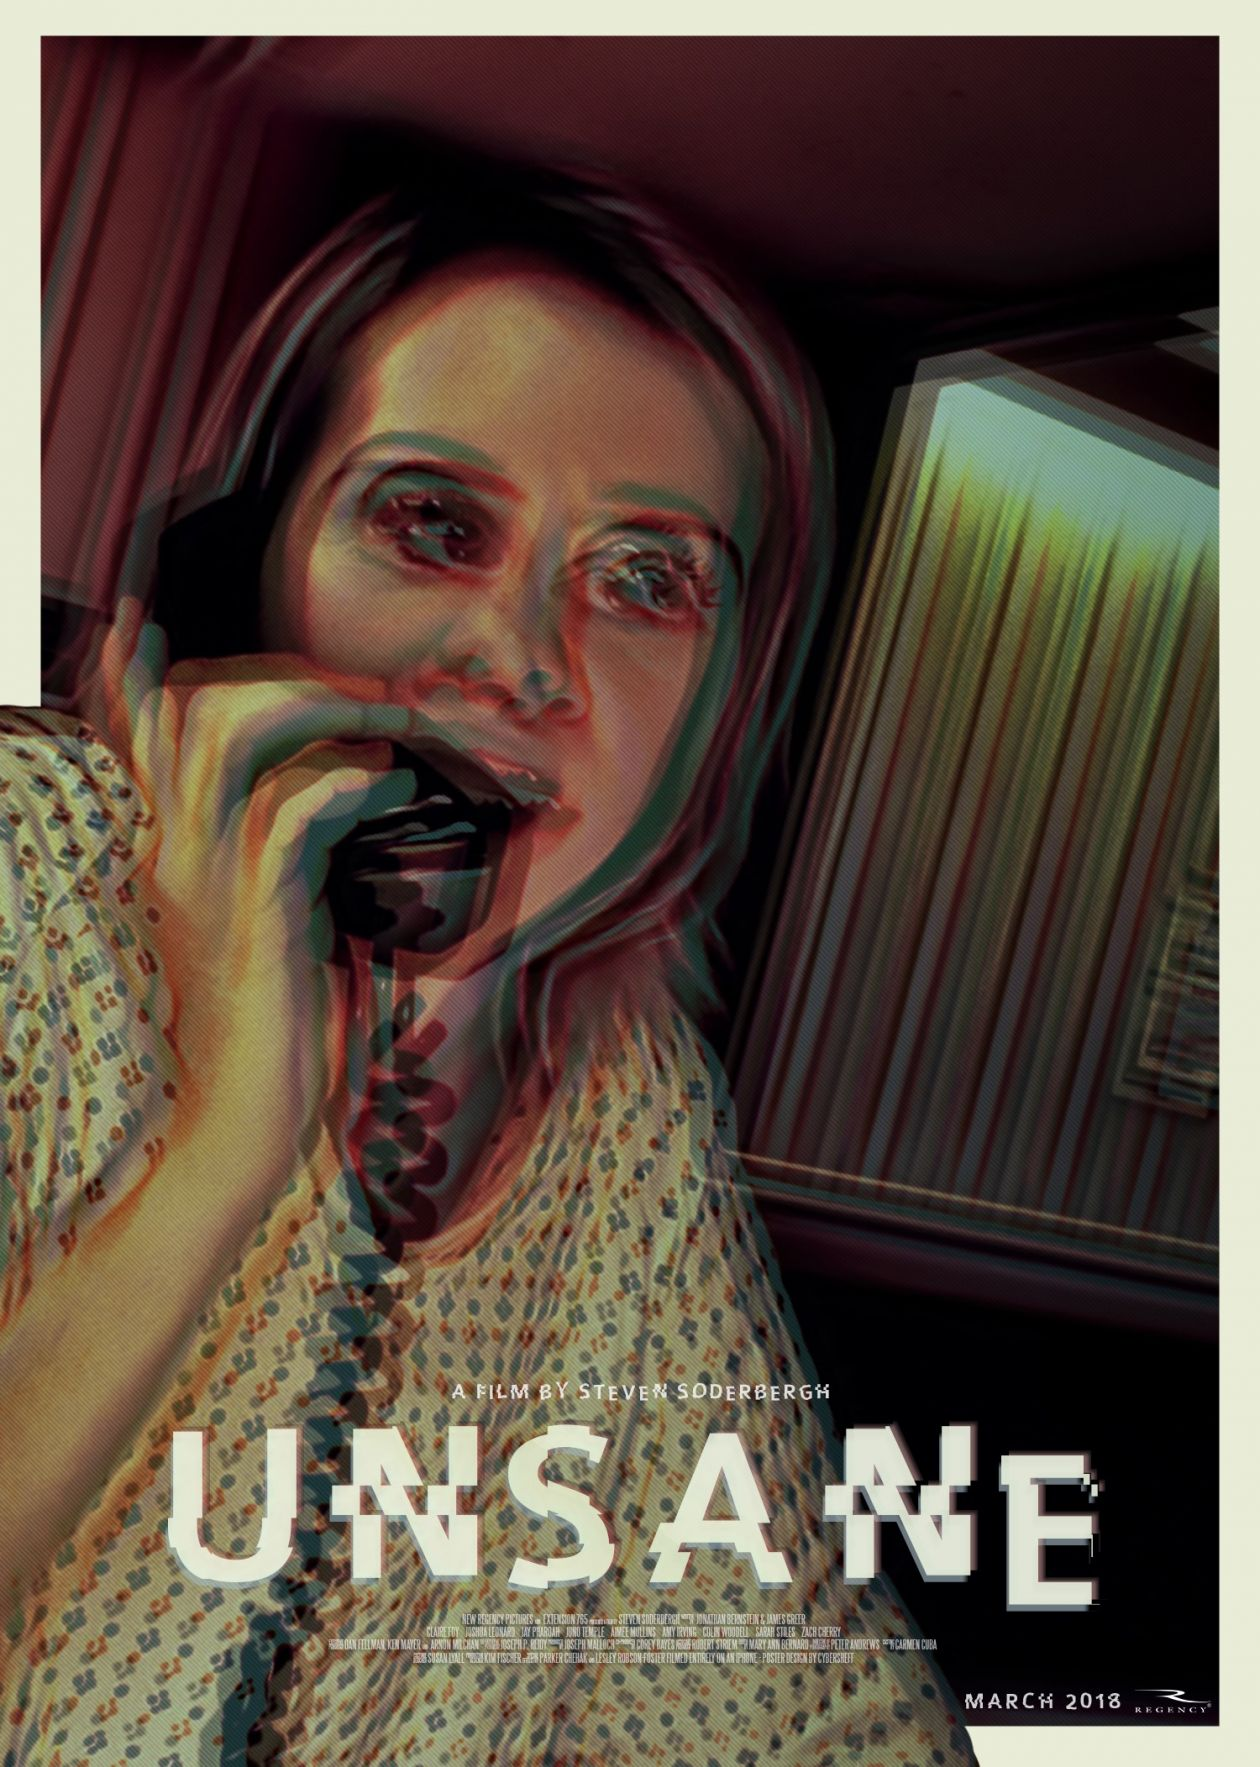 Claire Foy / Sawyer Valentini | Unsane / Paranoïa | Steven Soderbergh Film Poster